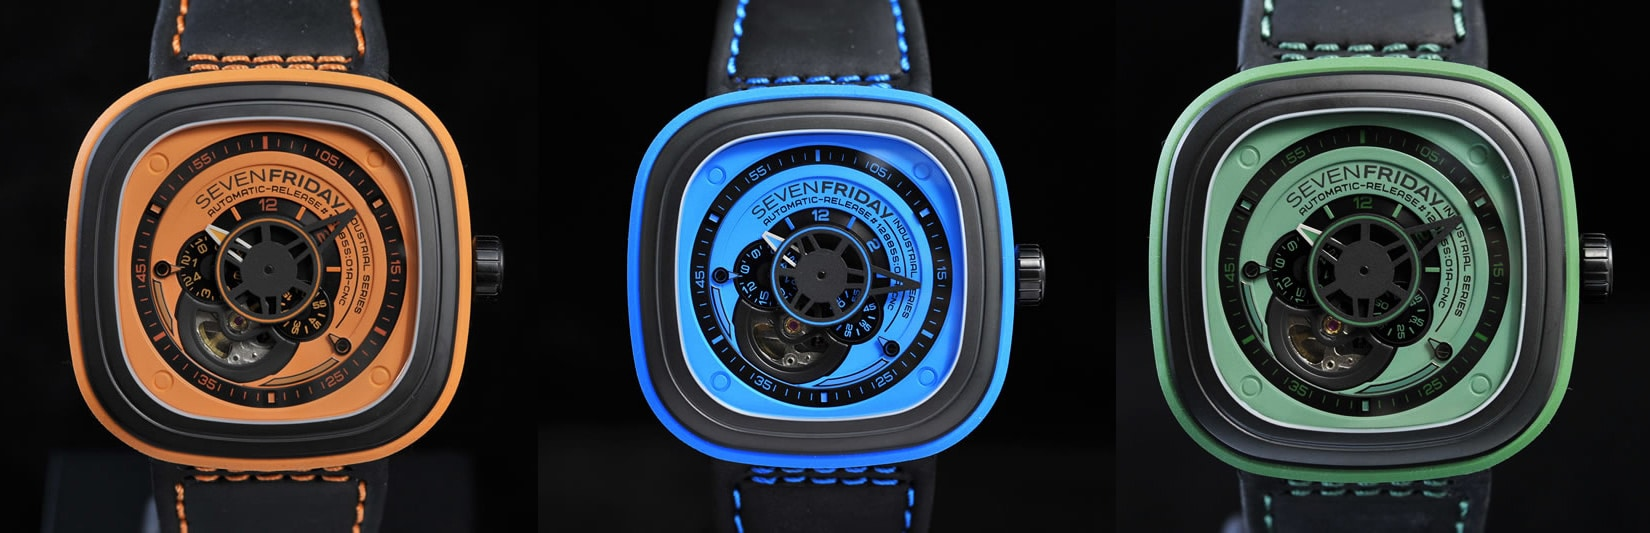 1387701329sevenfriday-colour-combined2